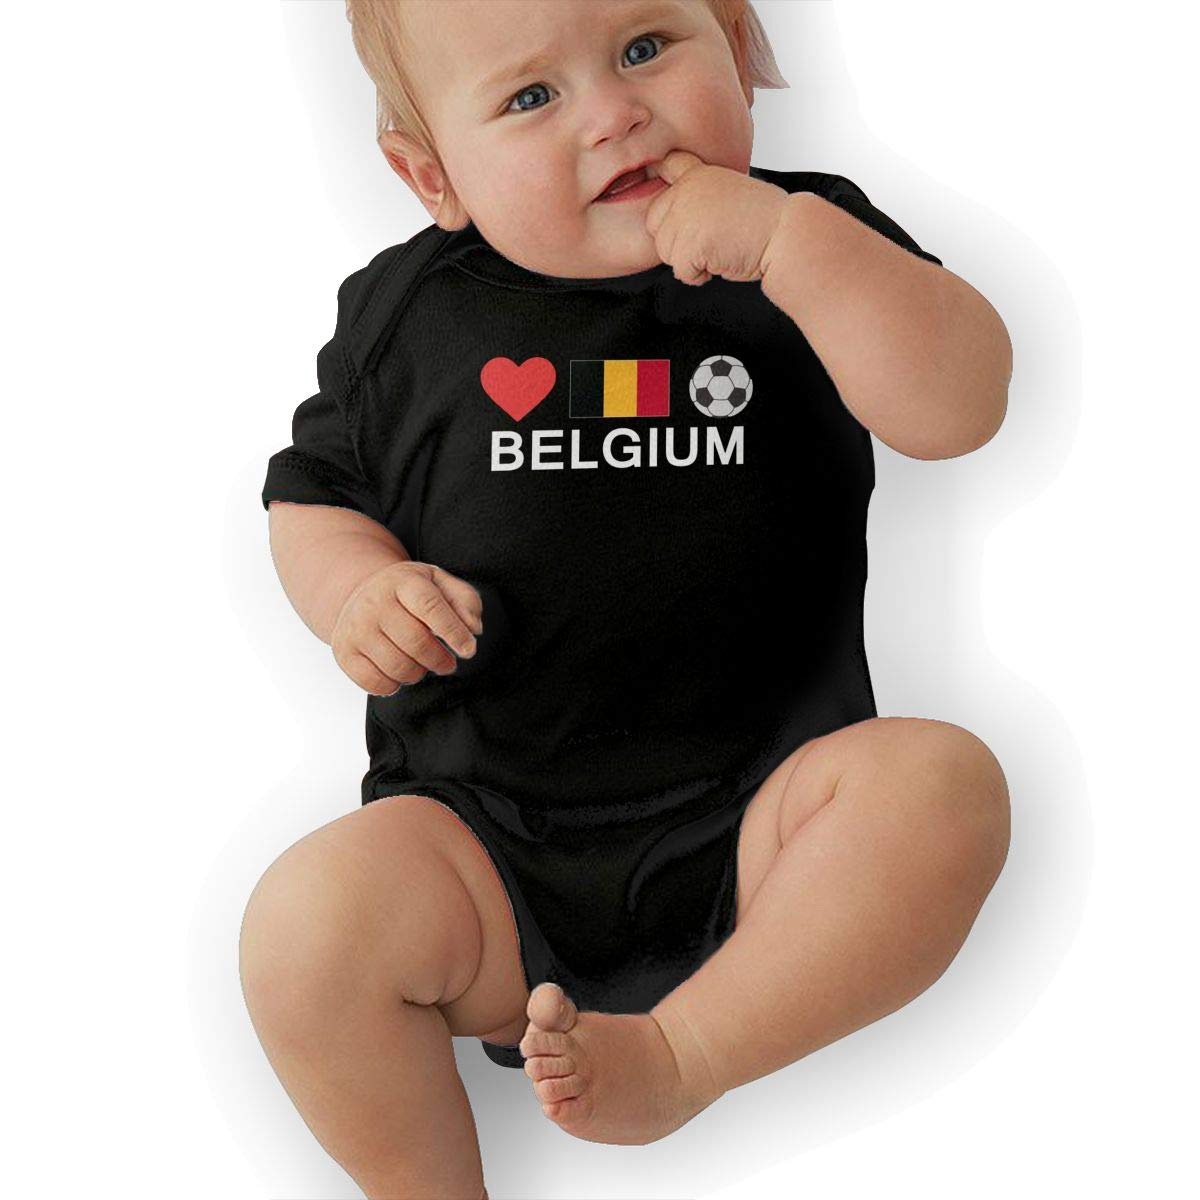 U88oi-8 Short Sleeve Cotton Rompers for Baby Girls Boys Soft Belgium Football Belgium Soccer Playsuit